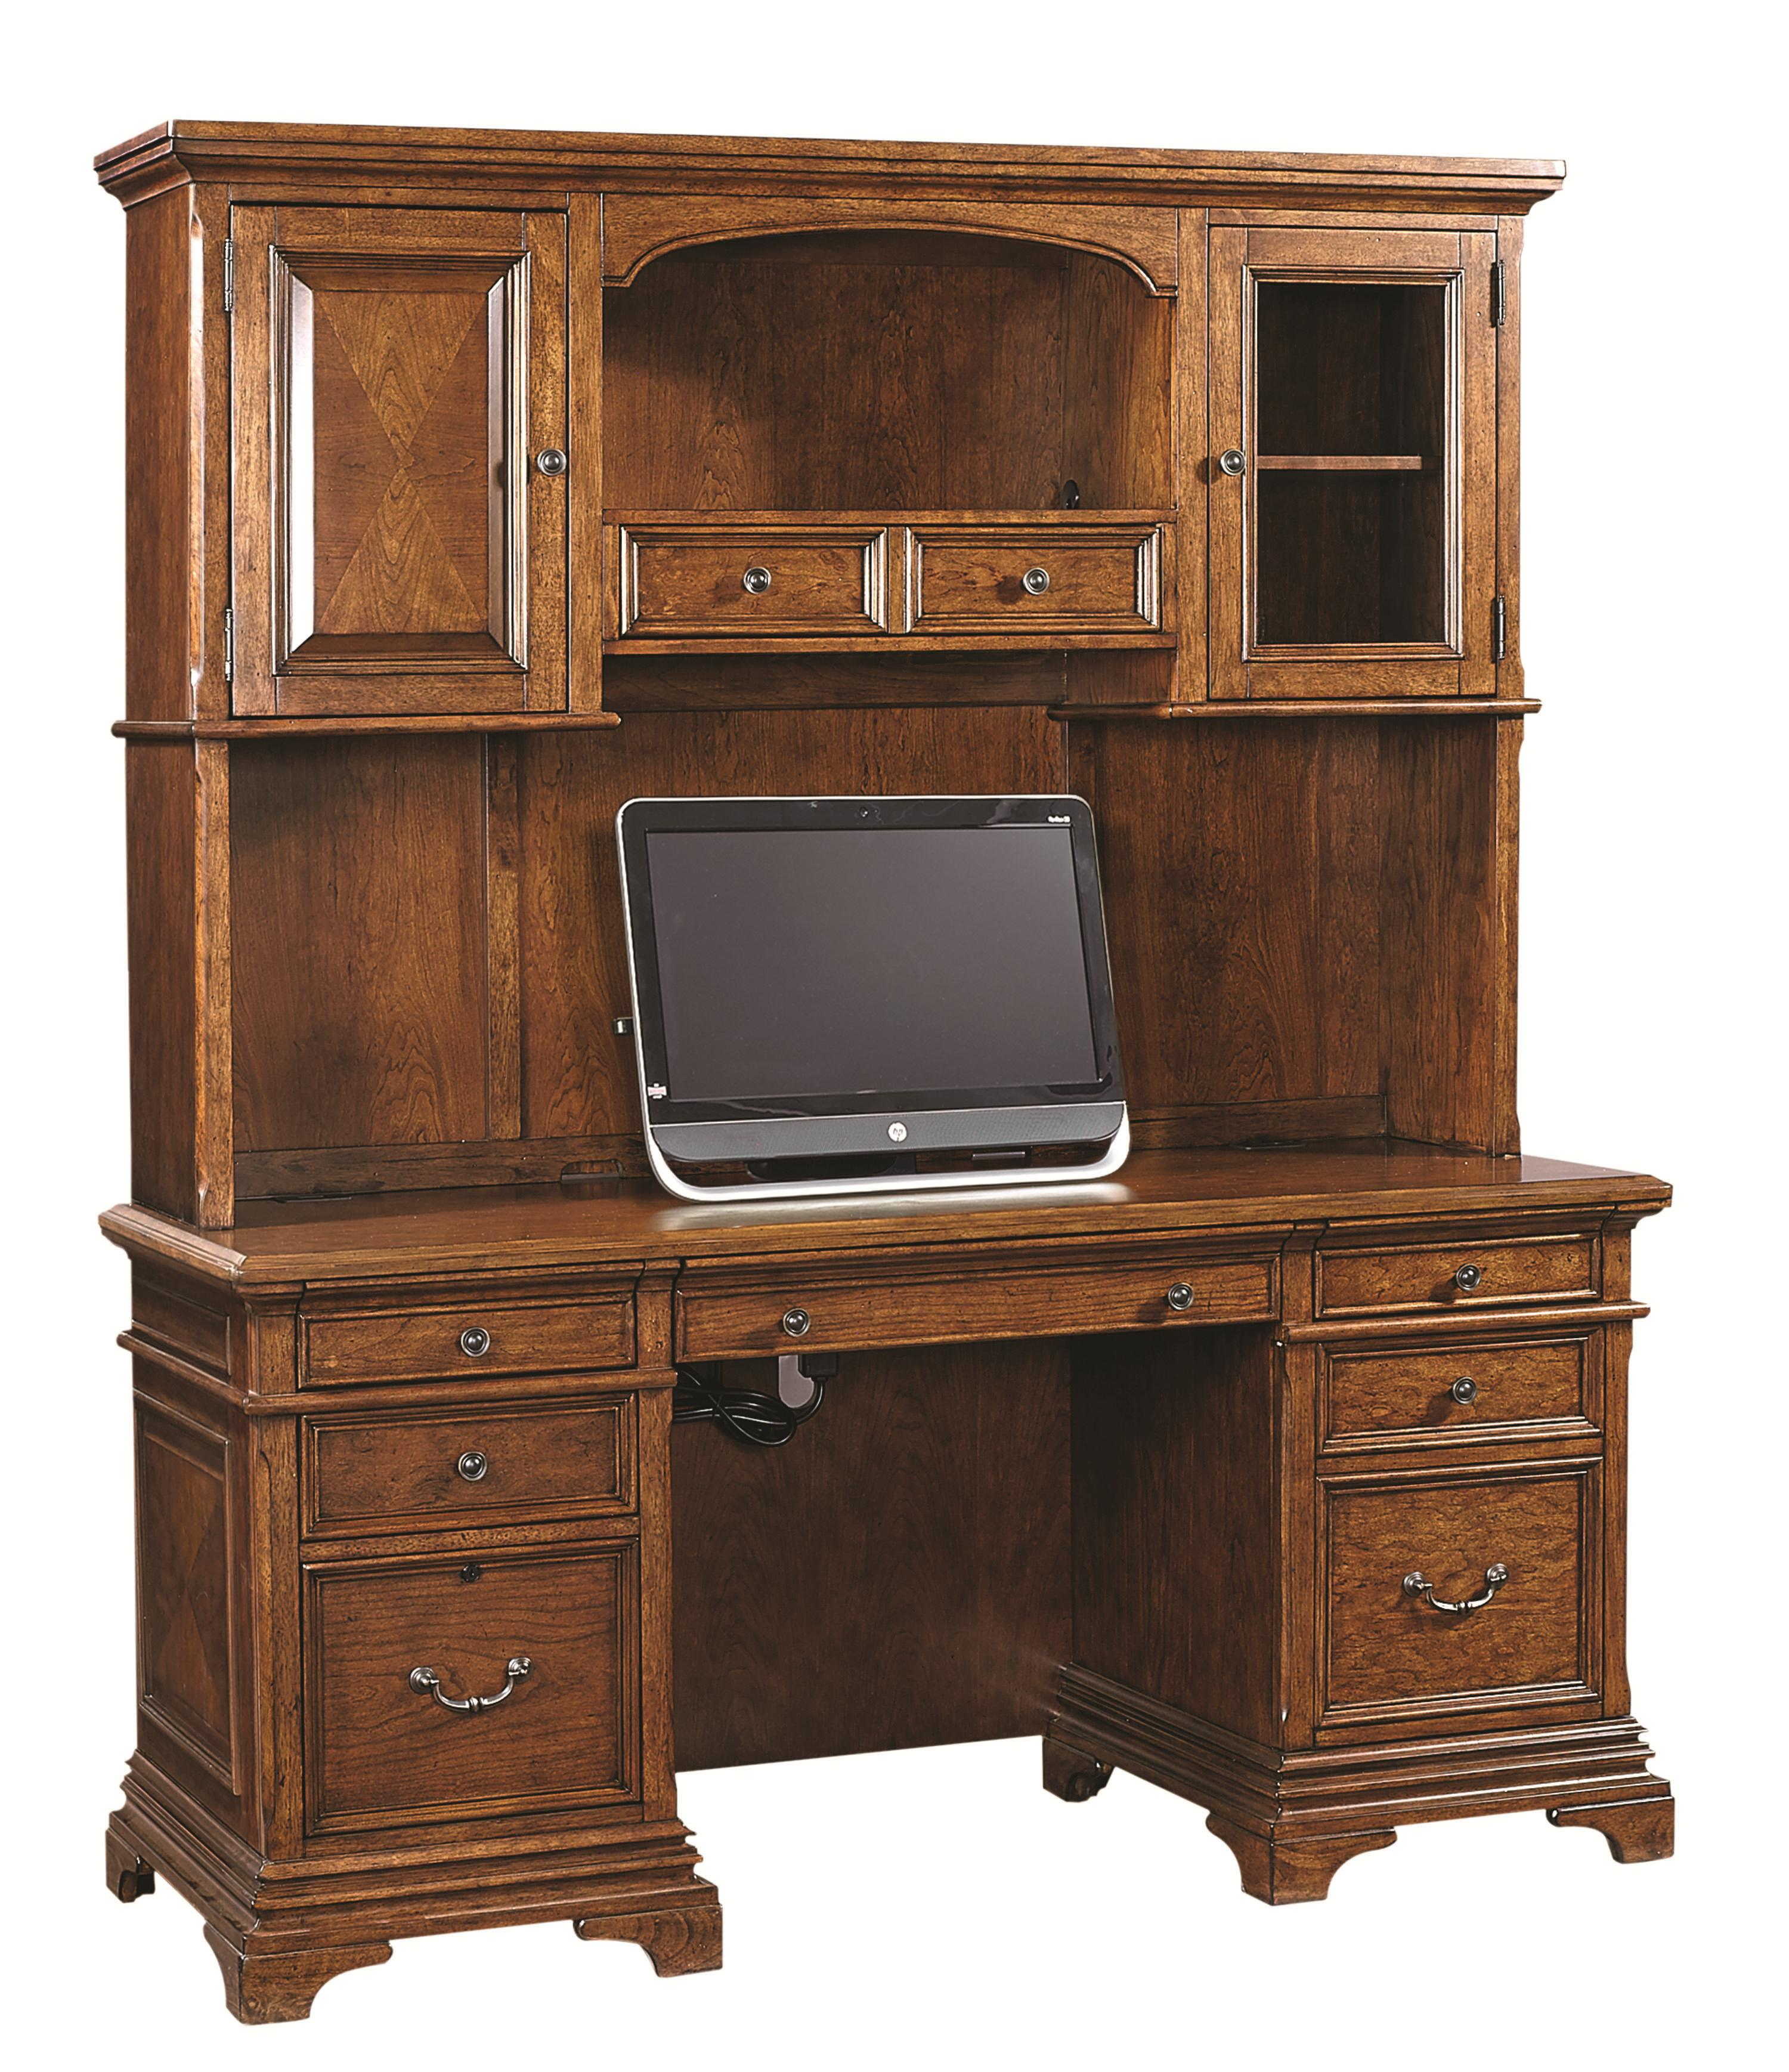 Aspenhome Hawthorne 74-Inch Credenza Desk and Hutch - Item Number: I26-319+318